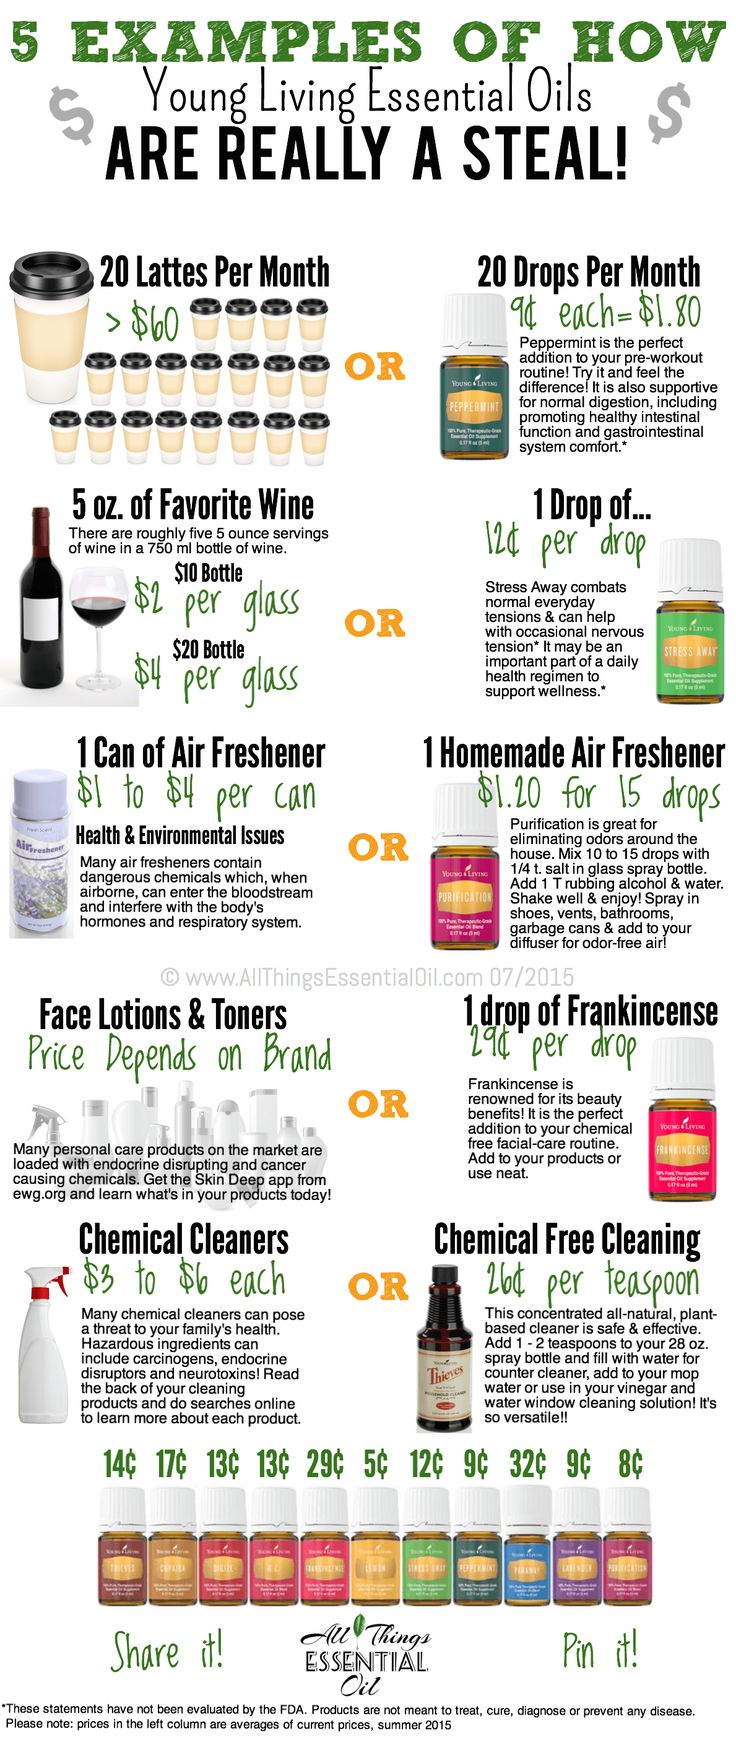 17 best ideas about young living business on pinterest | young, Invoice templates